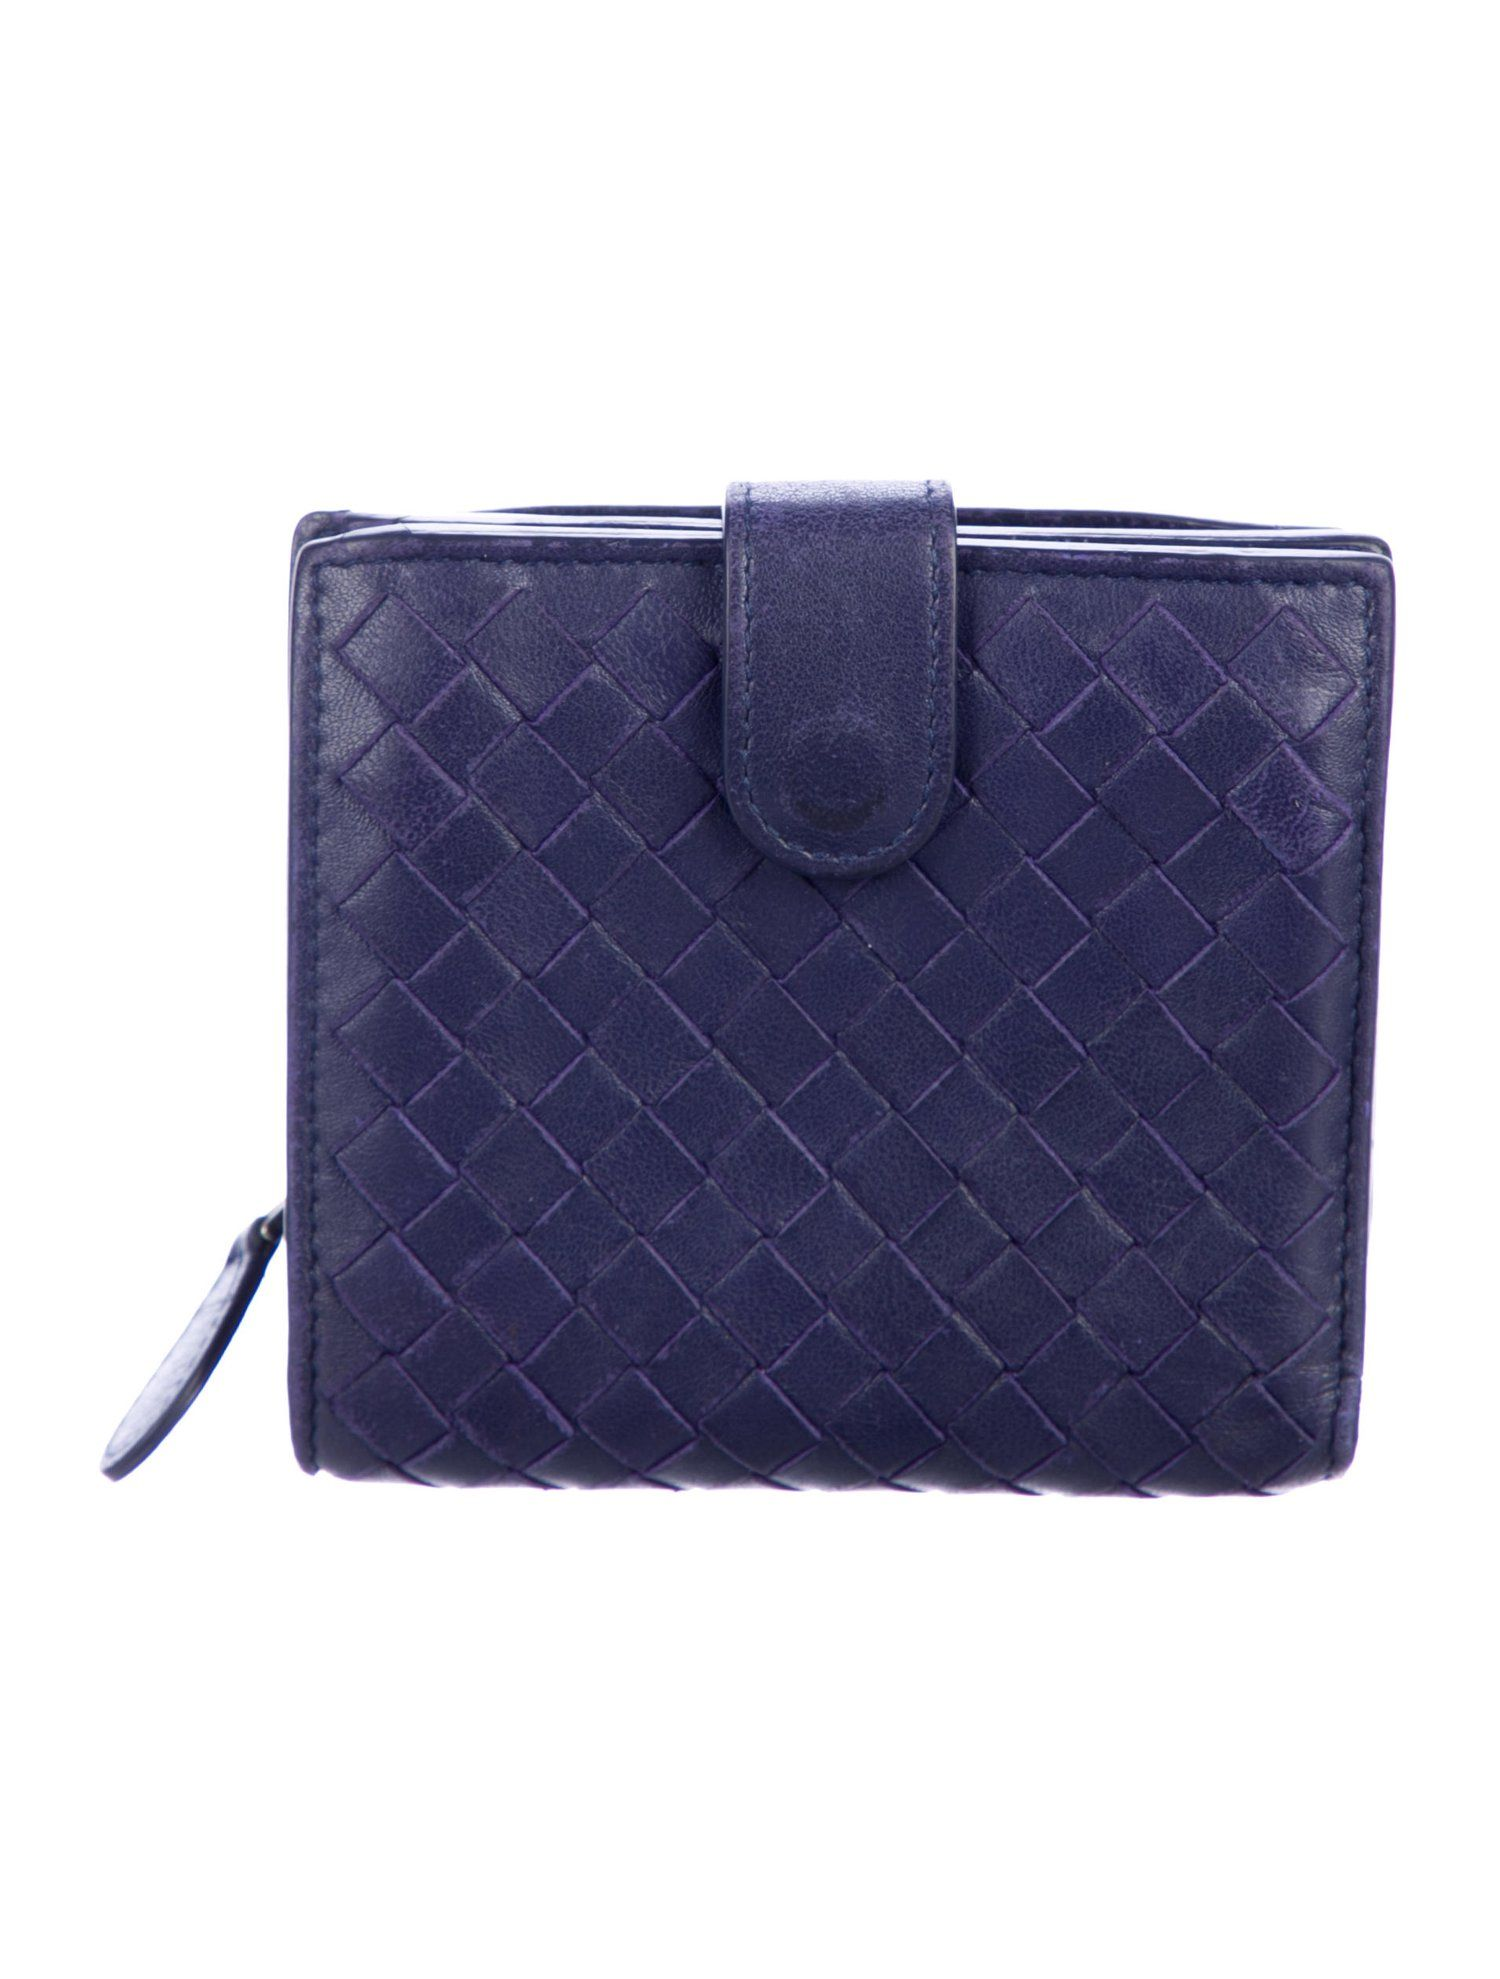 Intrecciato Leather Compact Wallet Compact Wallets Louis Vuitton Bag Neverfull Leather